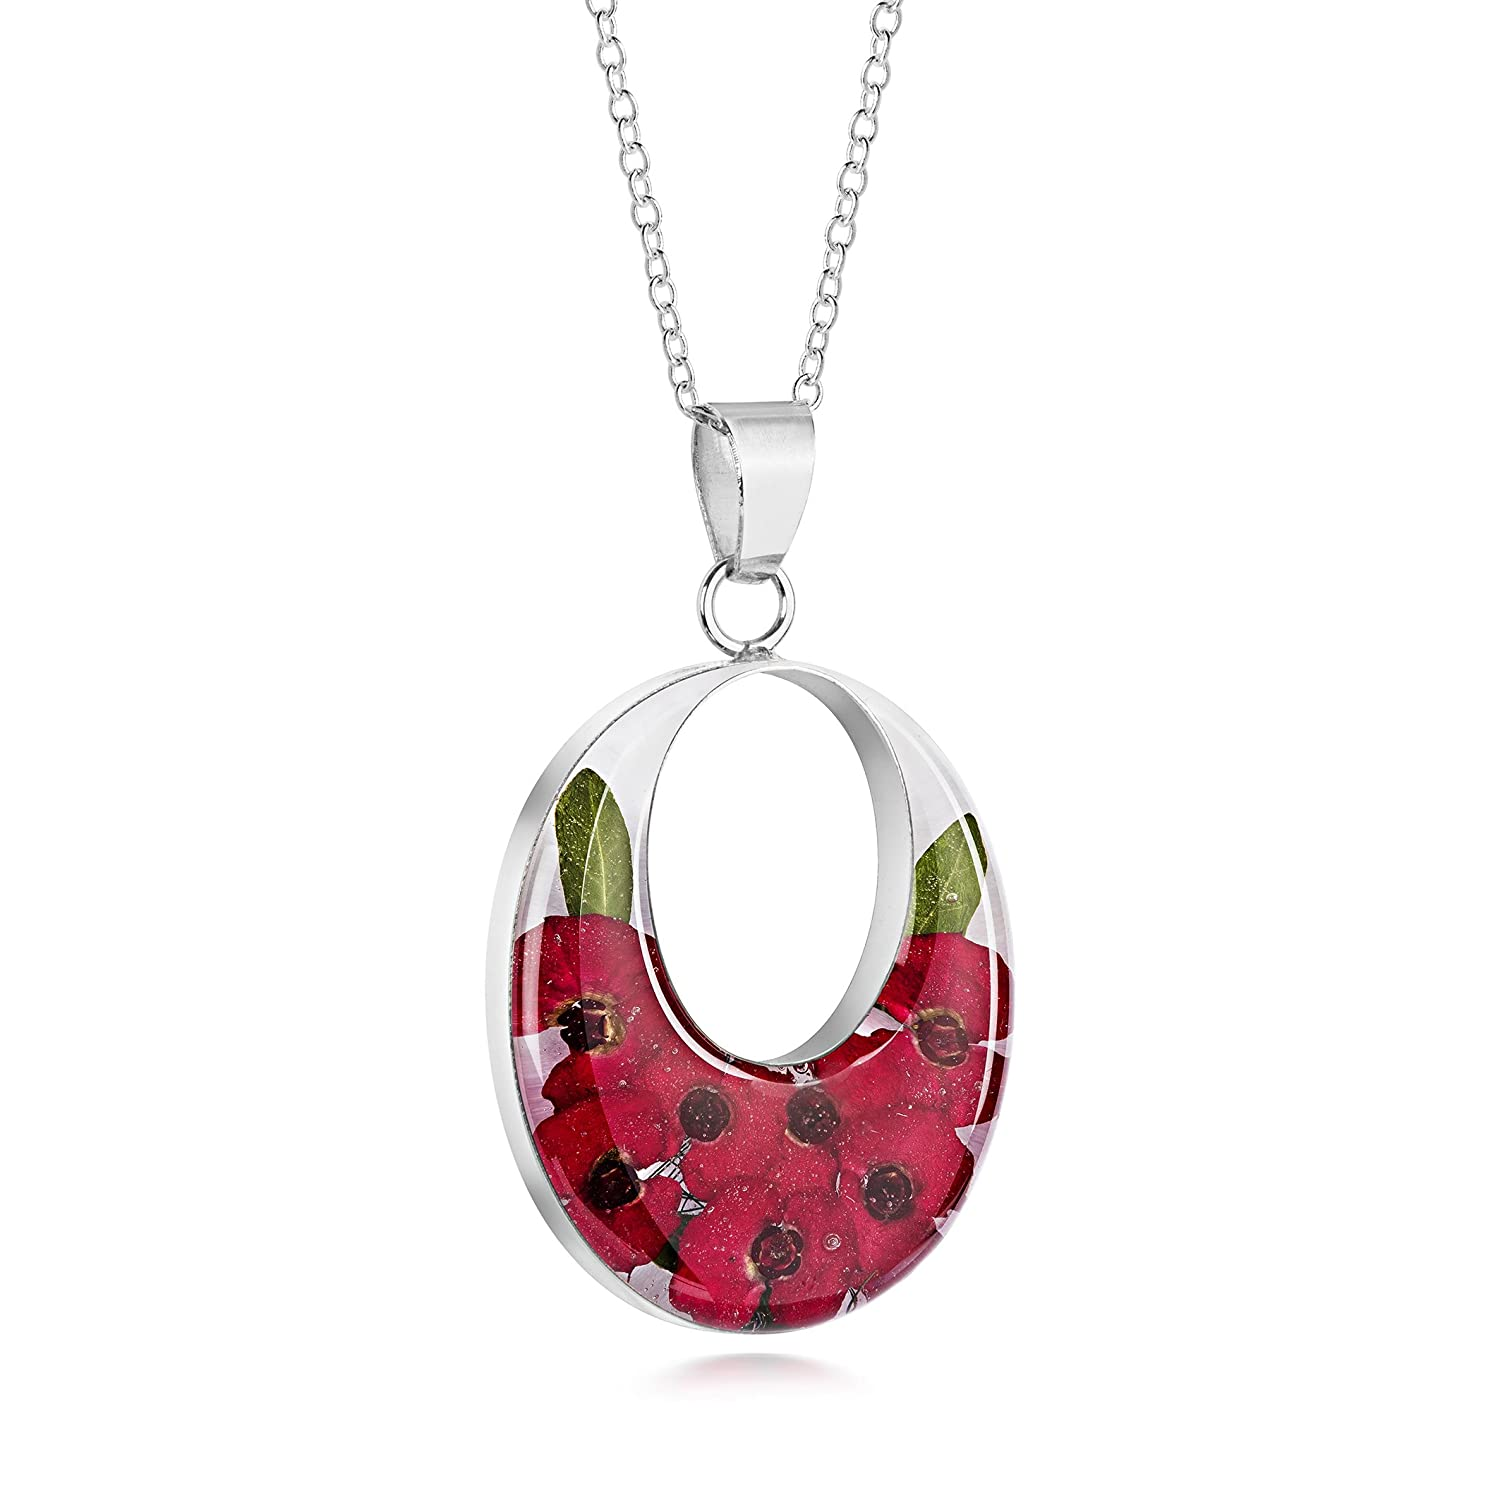 Natural Flower Jewellery Sterling Silver Large Double Oval Pendant Made with Real Poppies